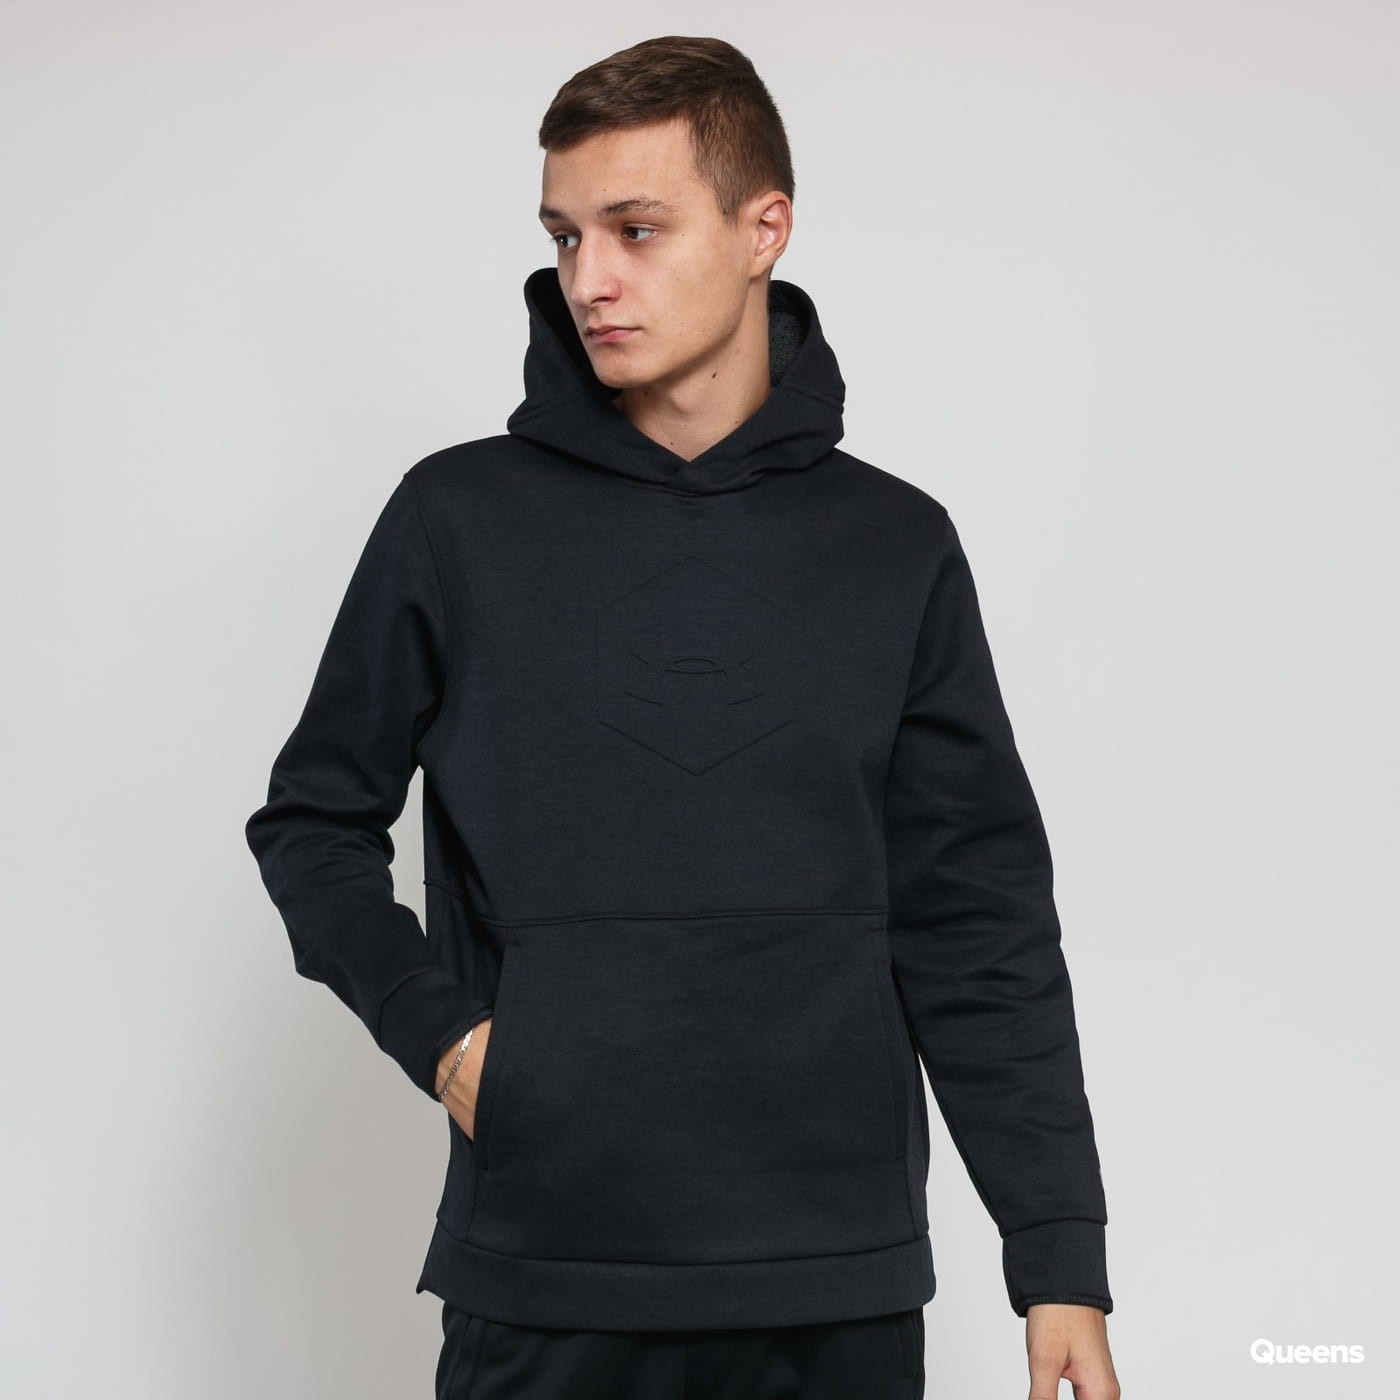 Under Armour Athlete Recovery Fleece Graphic Hoodie black